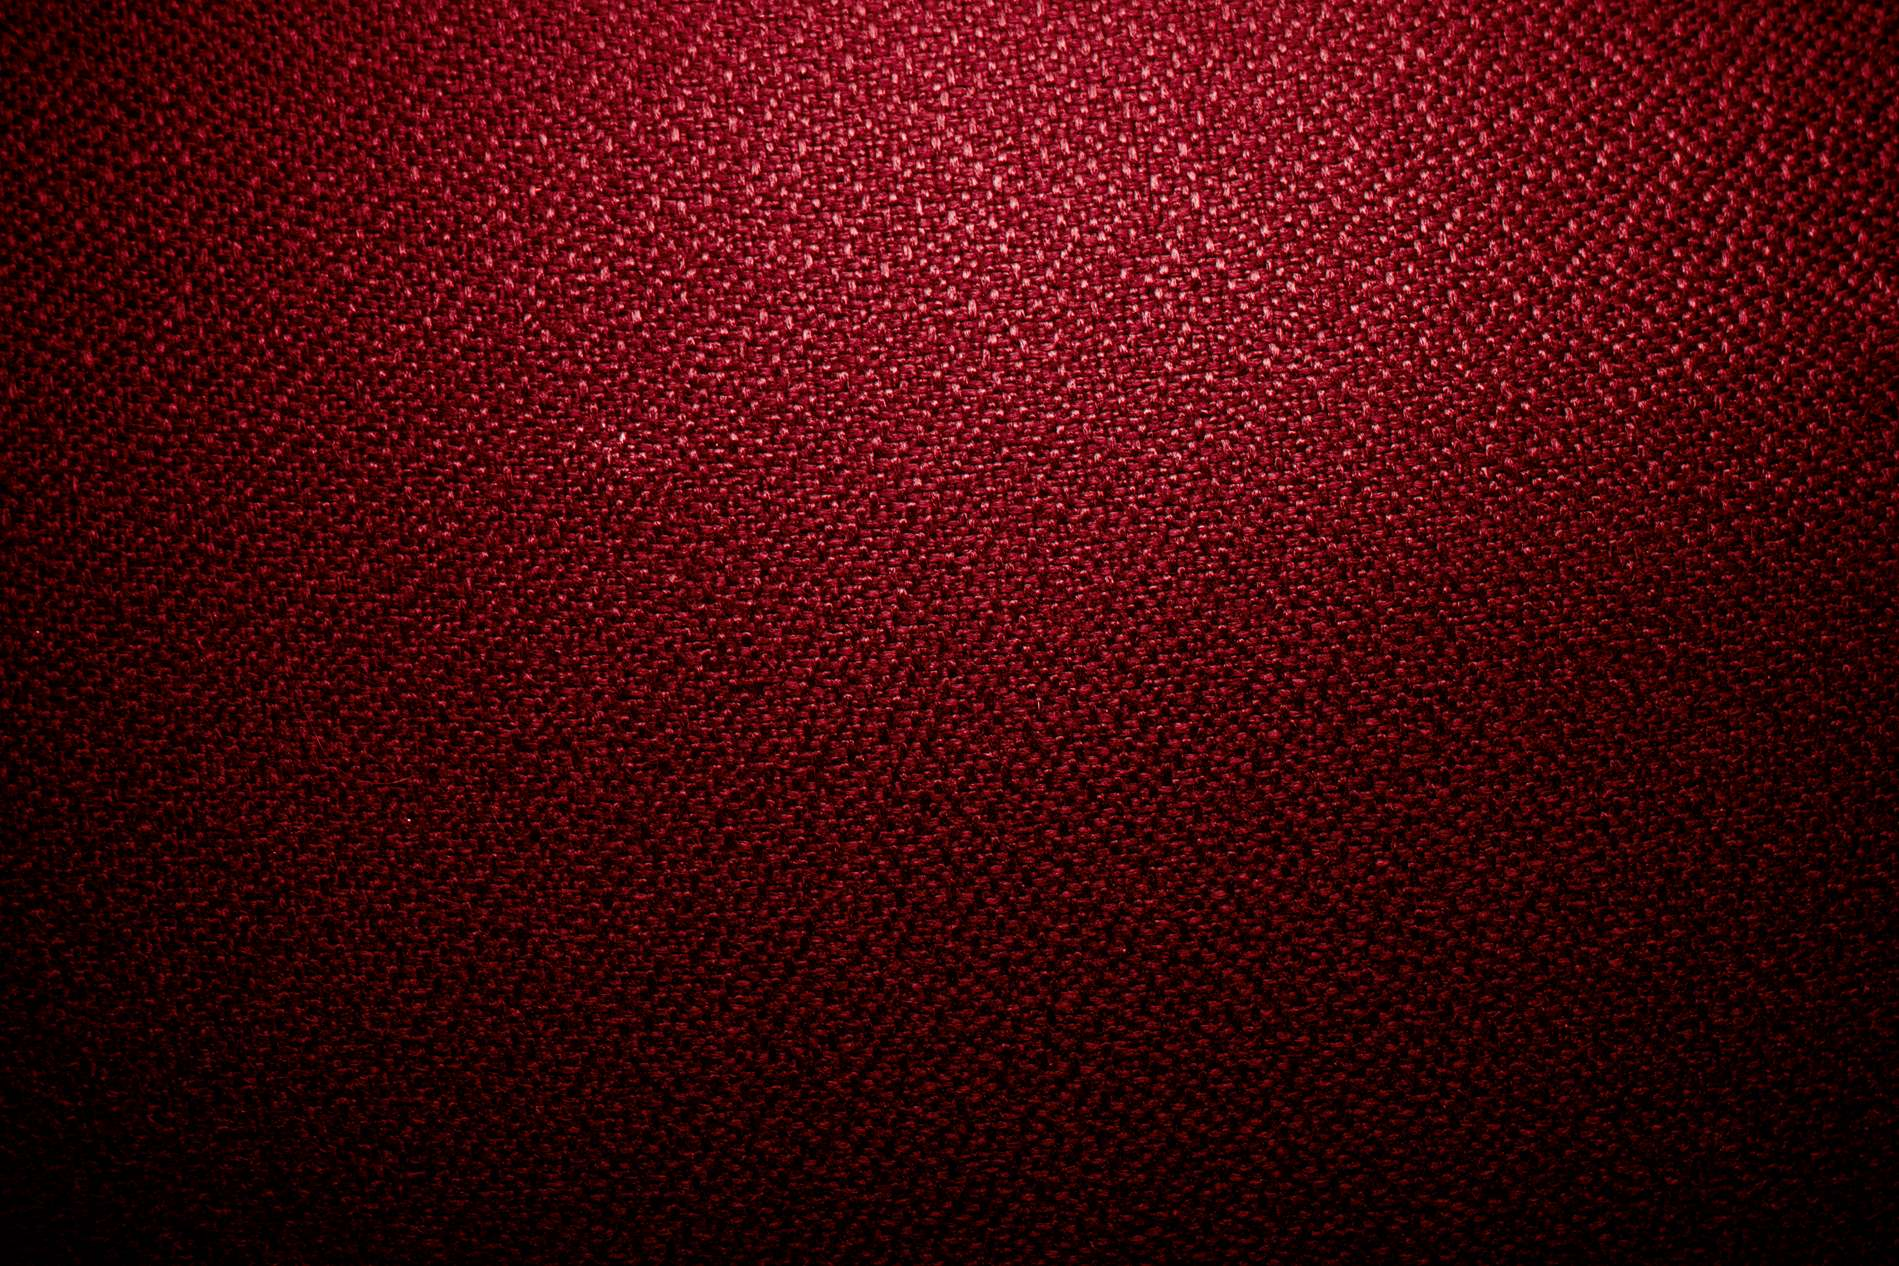 Vintage Backgrounds Free Stock Image Dark Red Canvas Texture